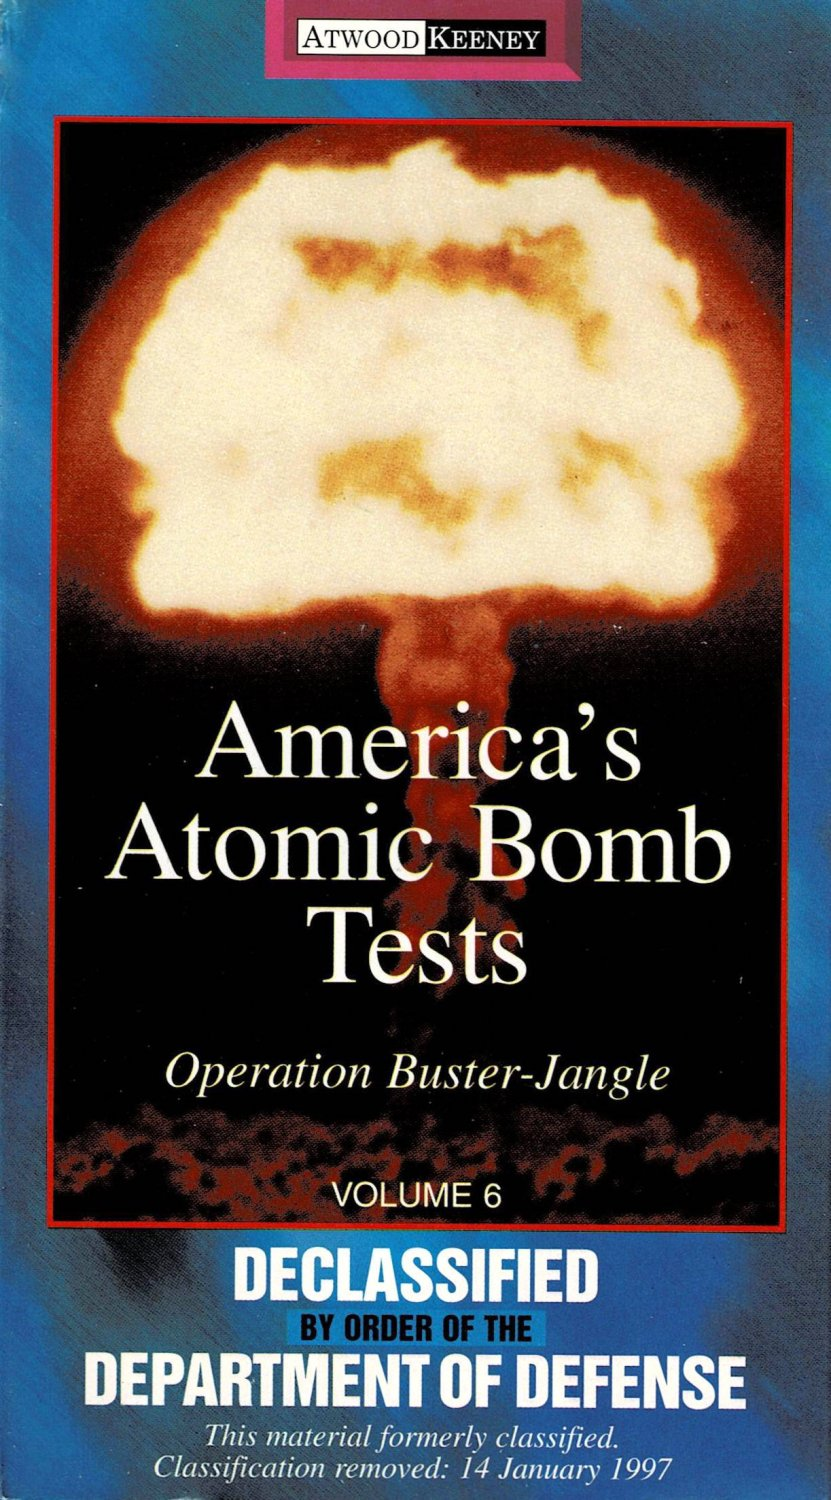 America's Atomic Bomb Tests Operation Buster Jangle Vol 6 VHS Video Documentary NEW